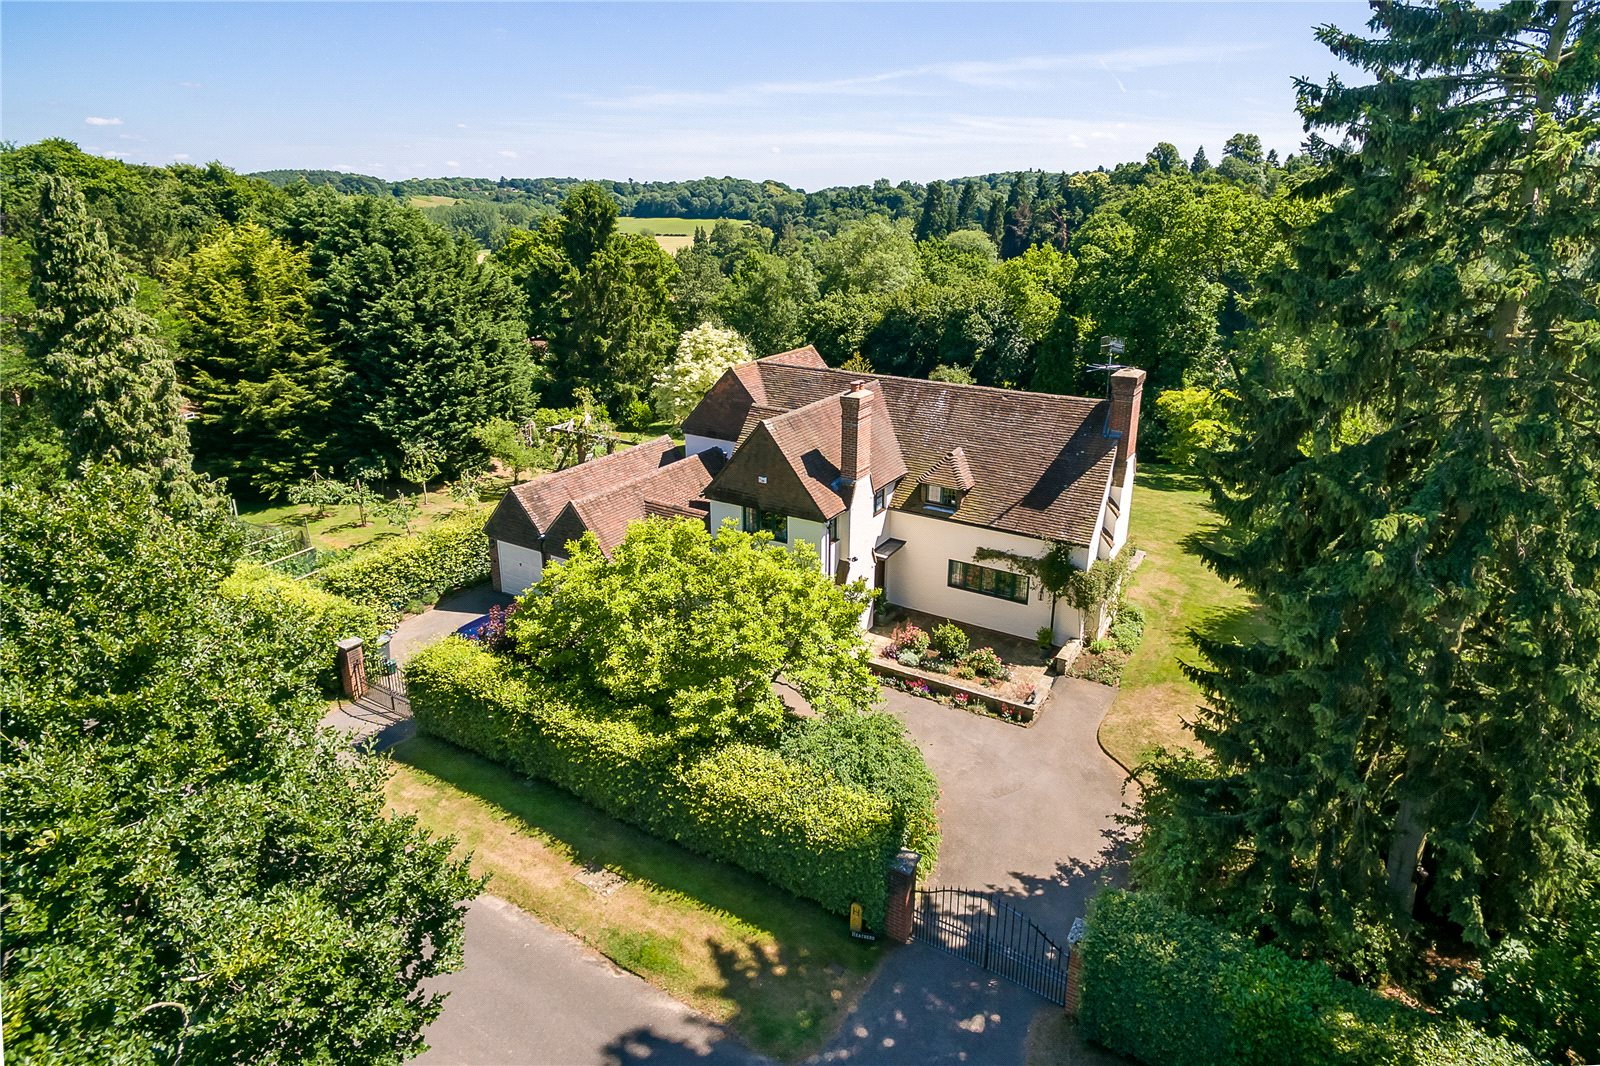 一戸建て のために 売買 アット Snowdenham Links Road, Bramley, Guildford, Surrey, GU5 Guildford, イギリス